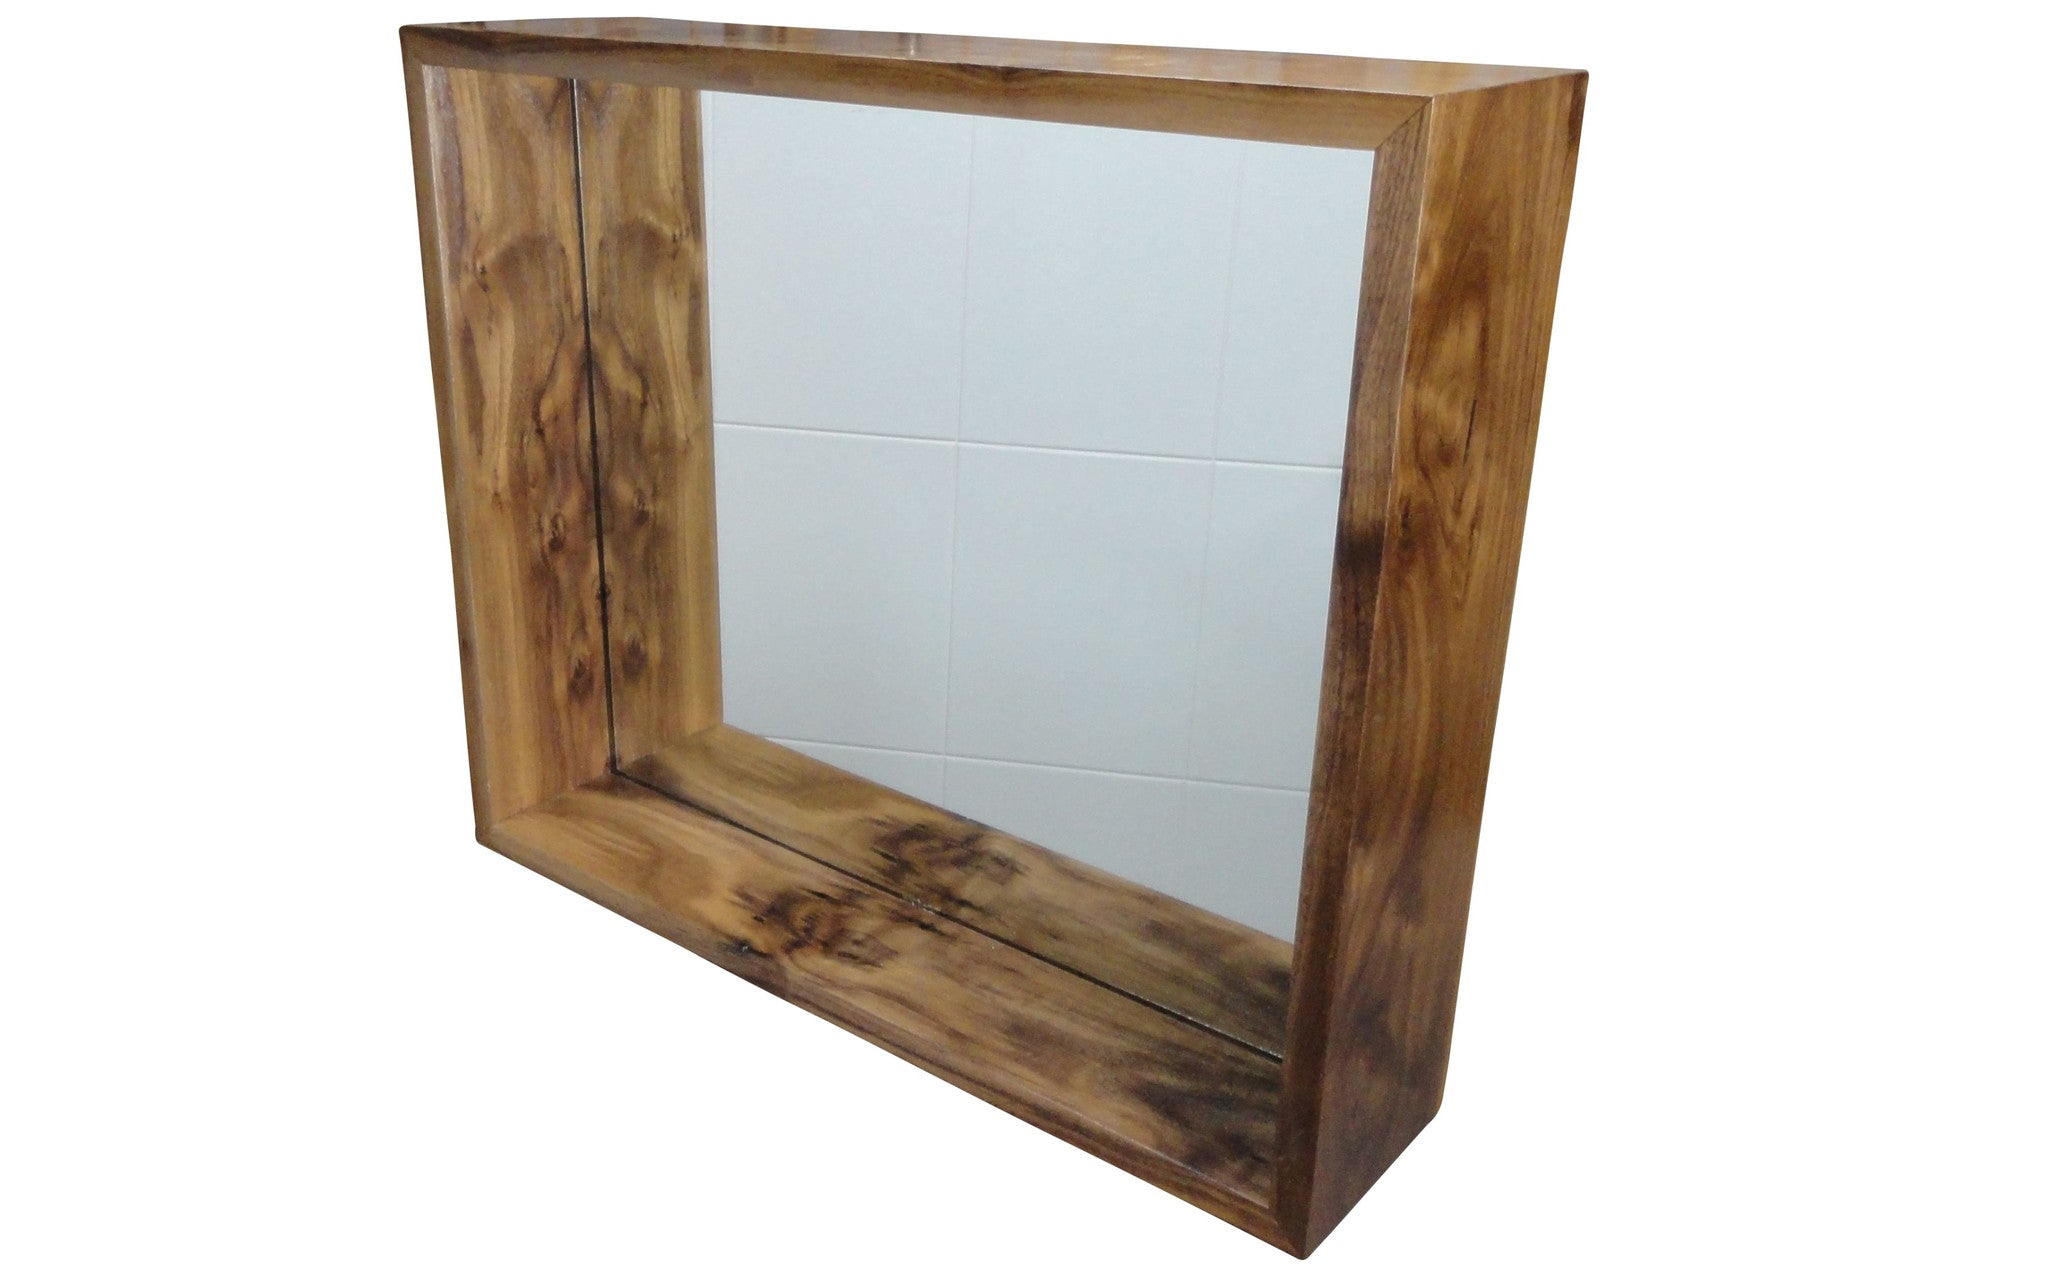 Timber Bathroom Accessories Eco Friendly Box Mirror Cabinet In Solid Timber Bathroom